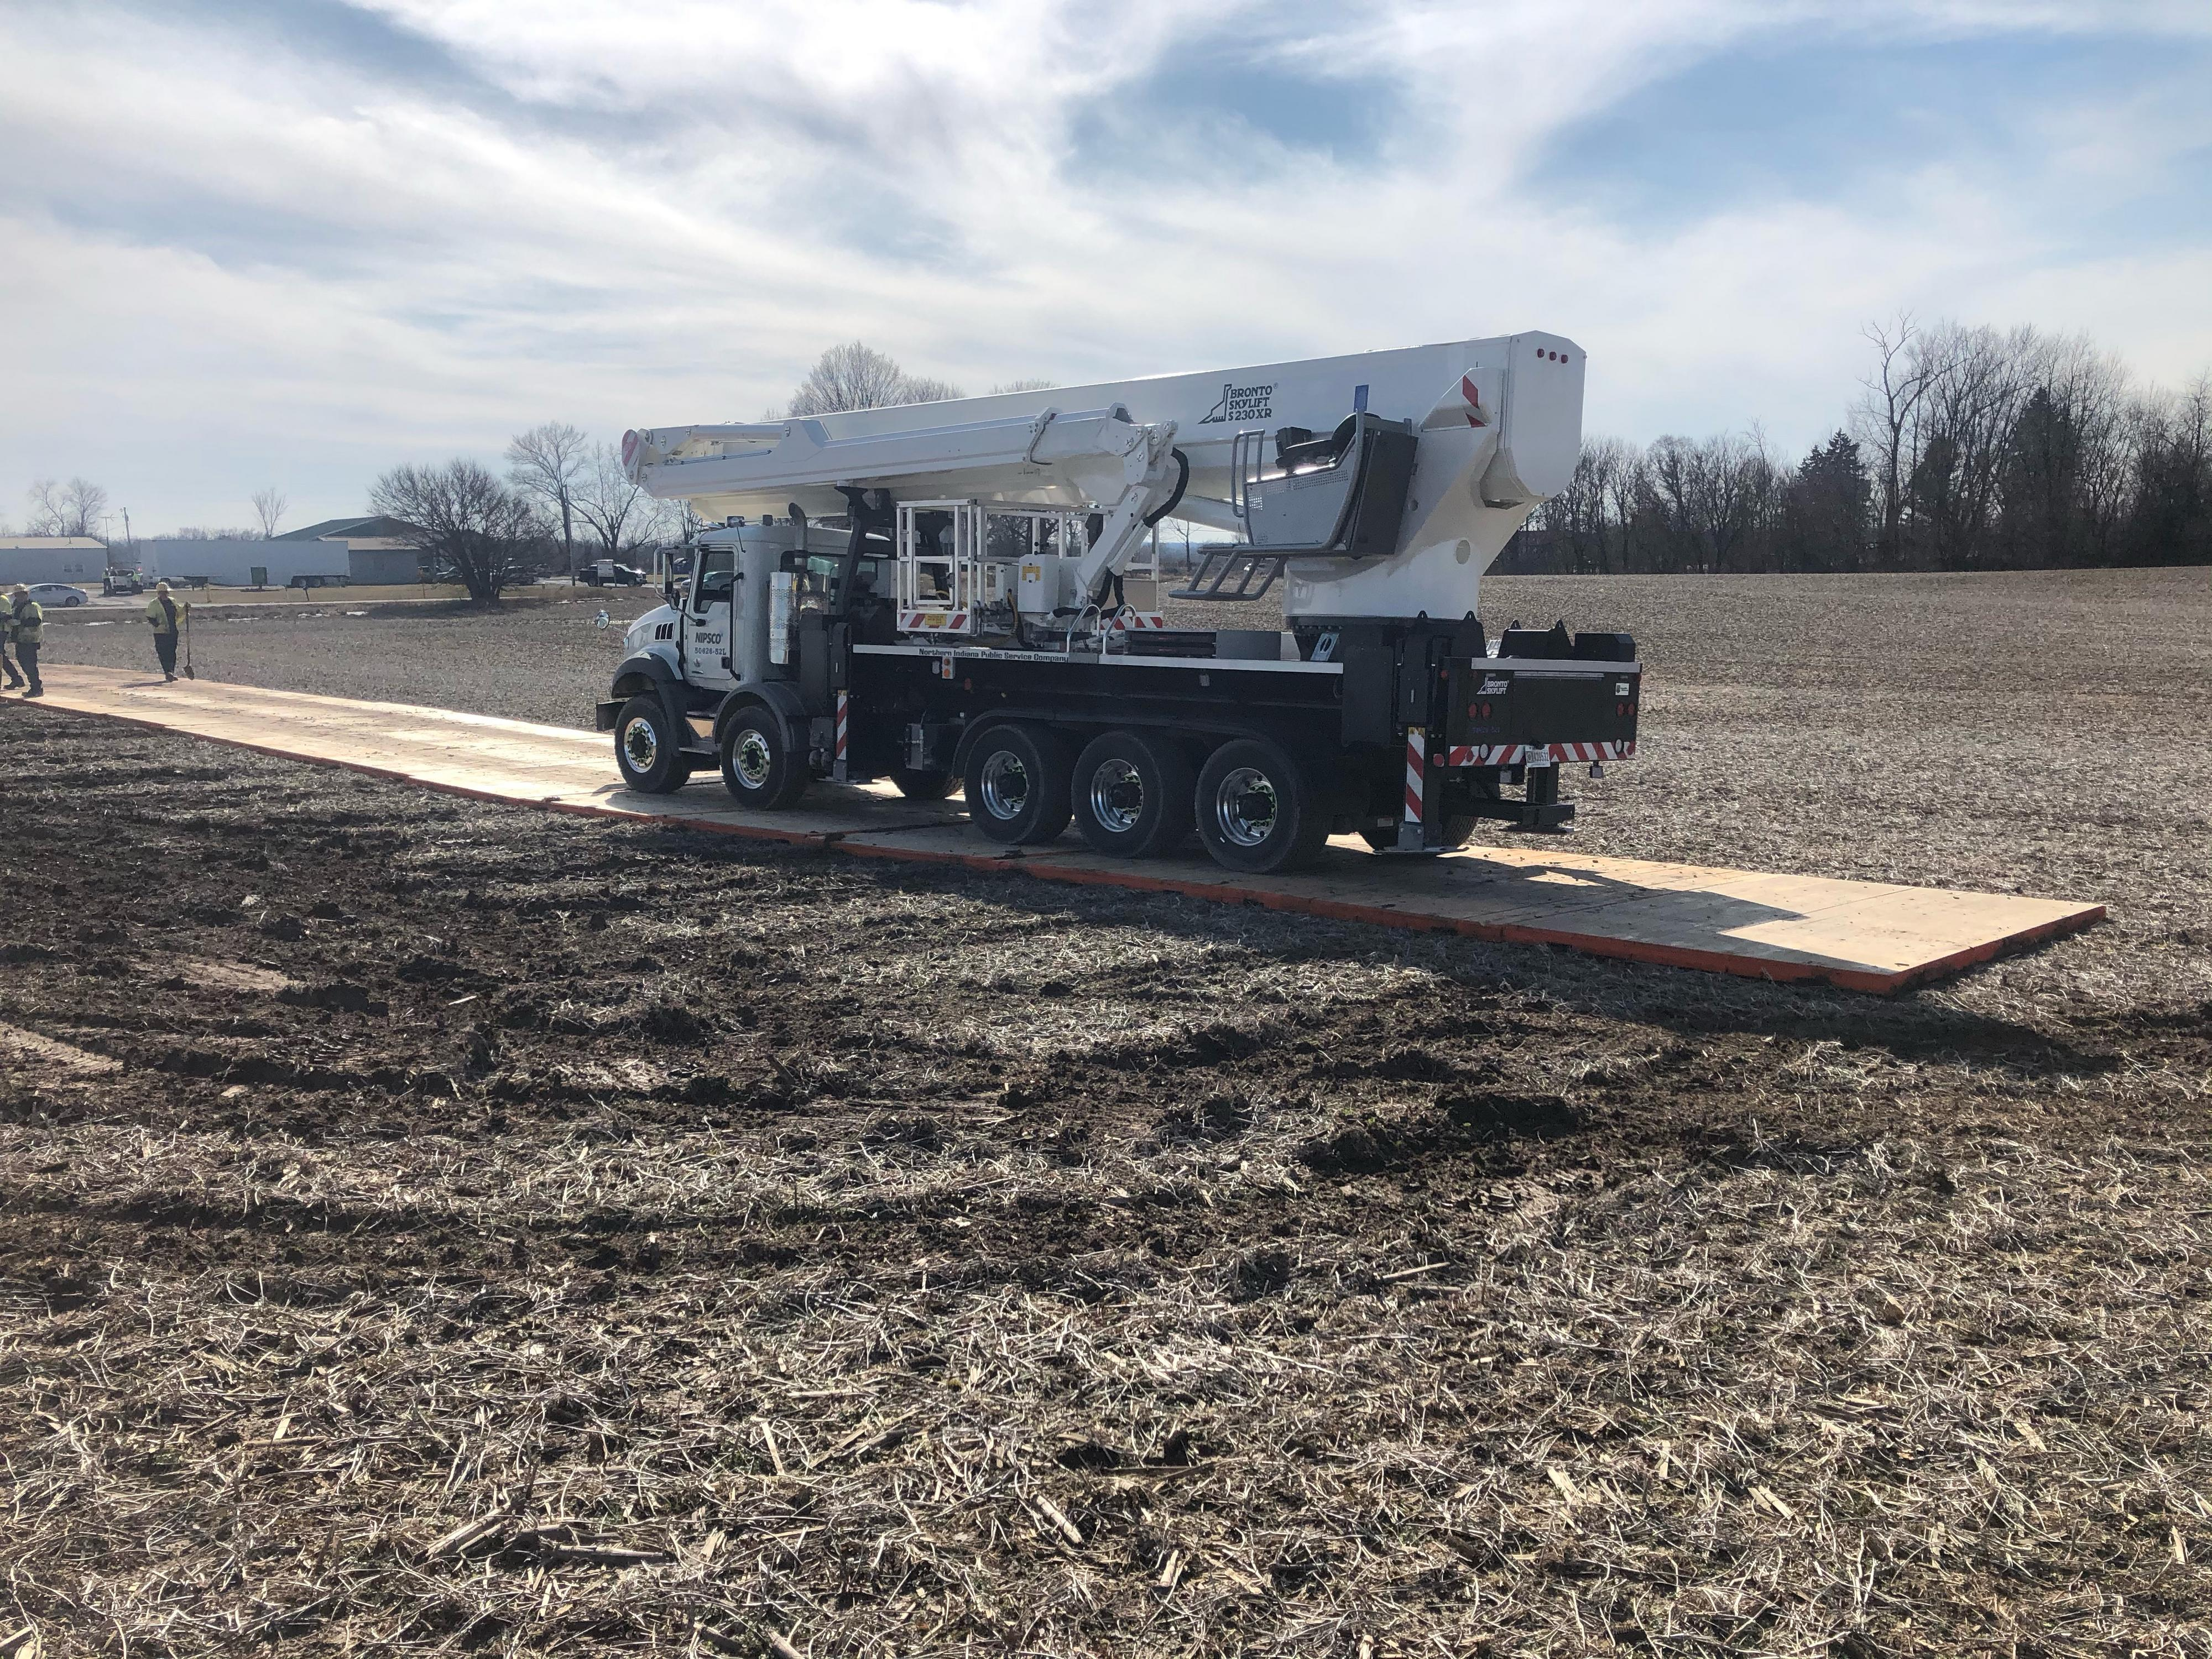 Bronto truckmounted aerial makes line work safer and more productive for Indiana utility